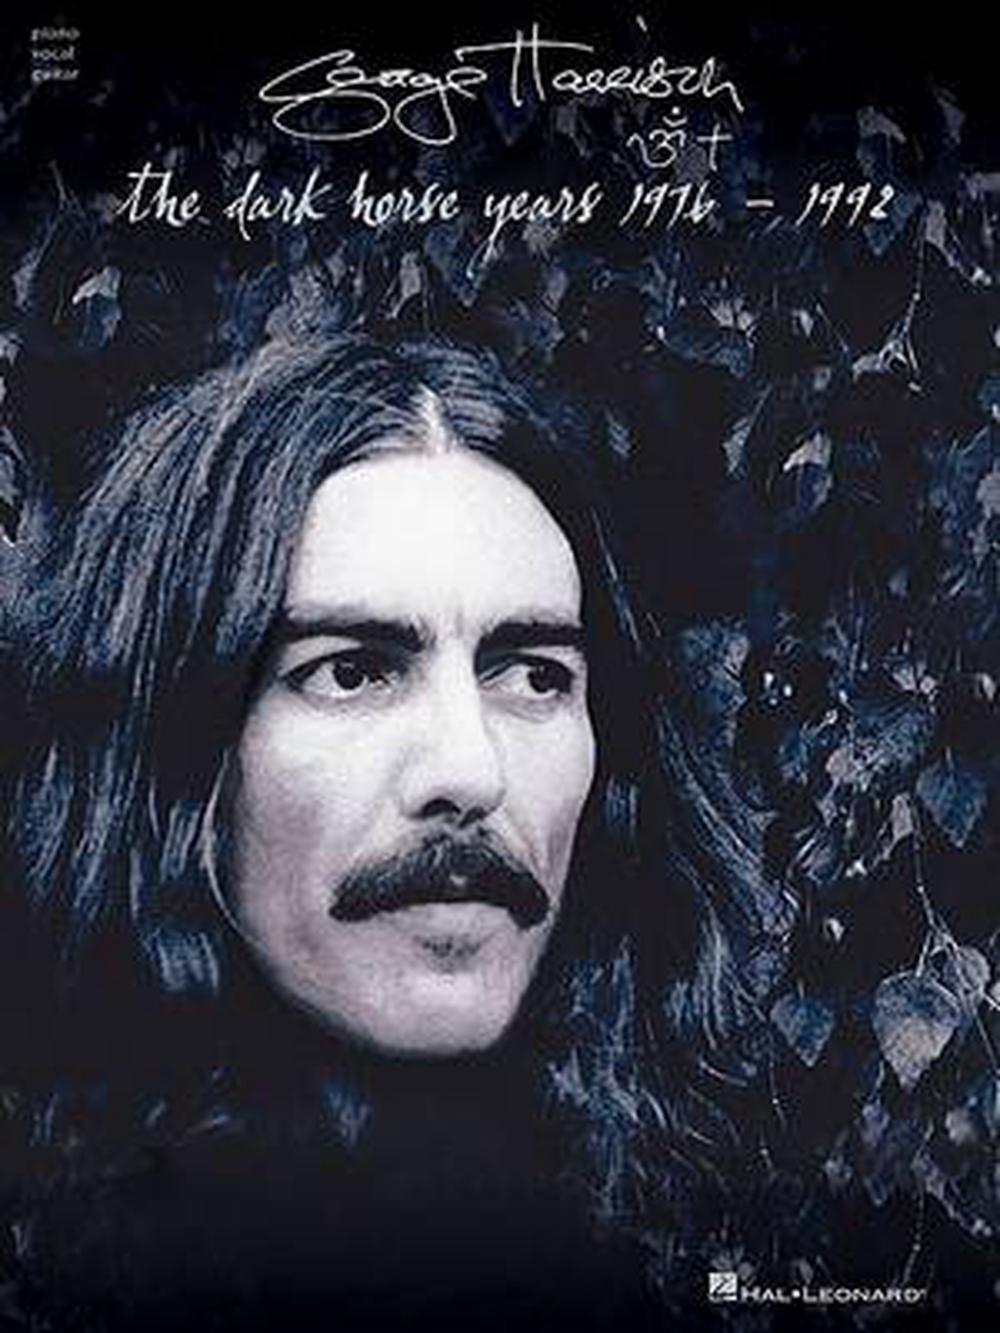 George Harrison: The Dark Horse Years, 1976-1992